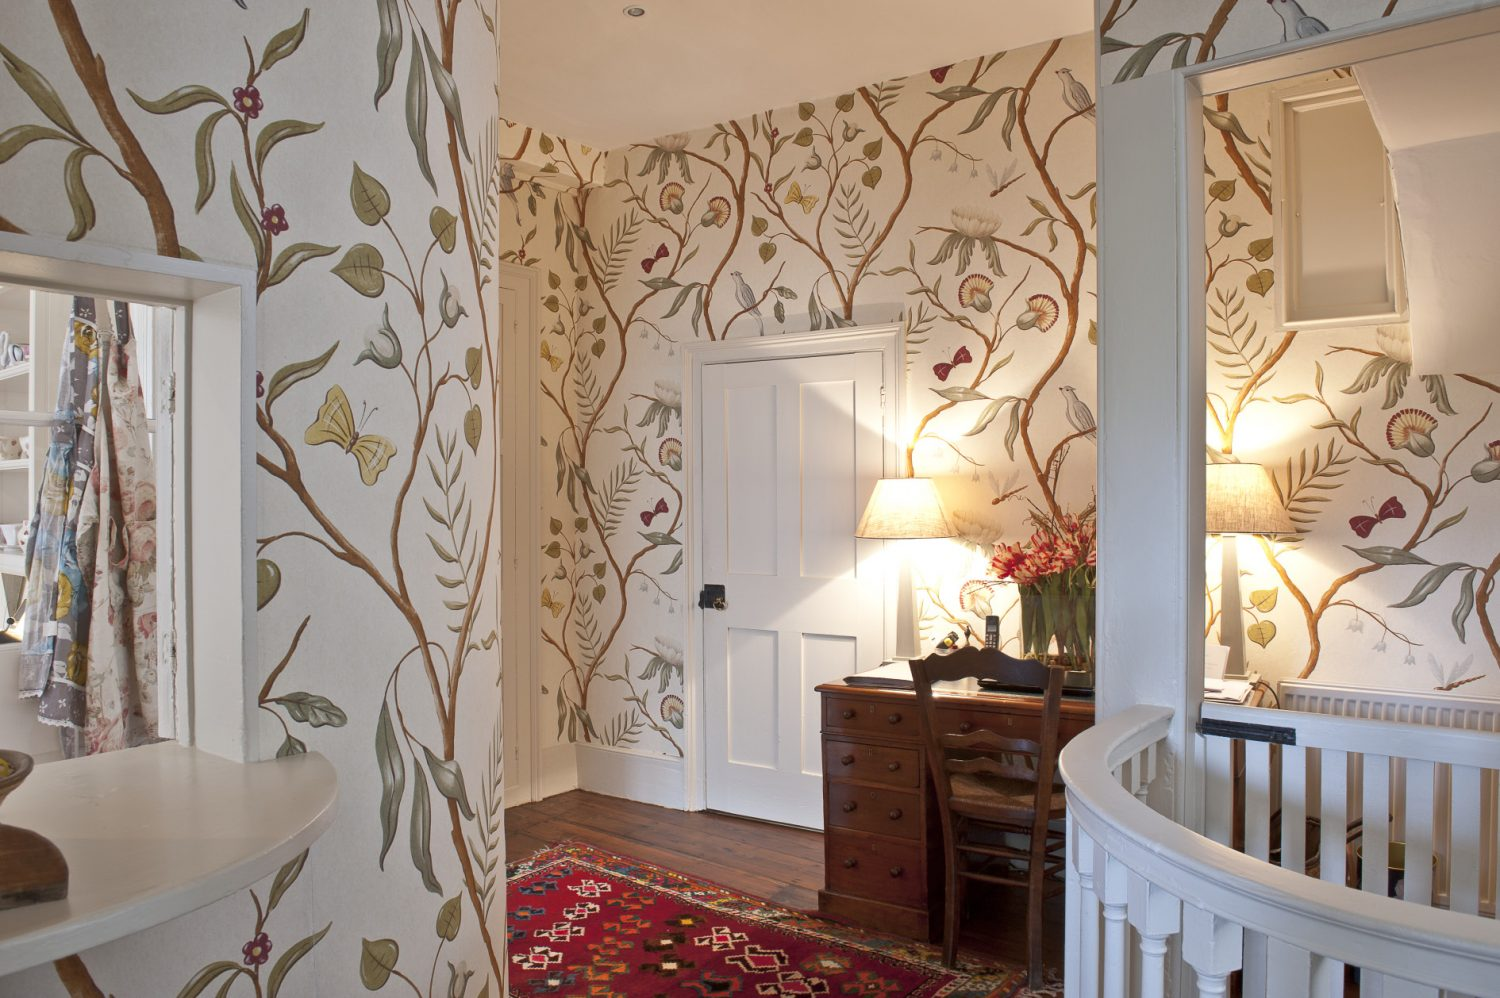 Adam's Eden by Lewis and Wood, Belinda's favourite wallpaper, looks very much at home in the hallway